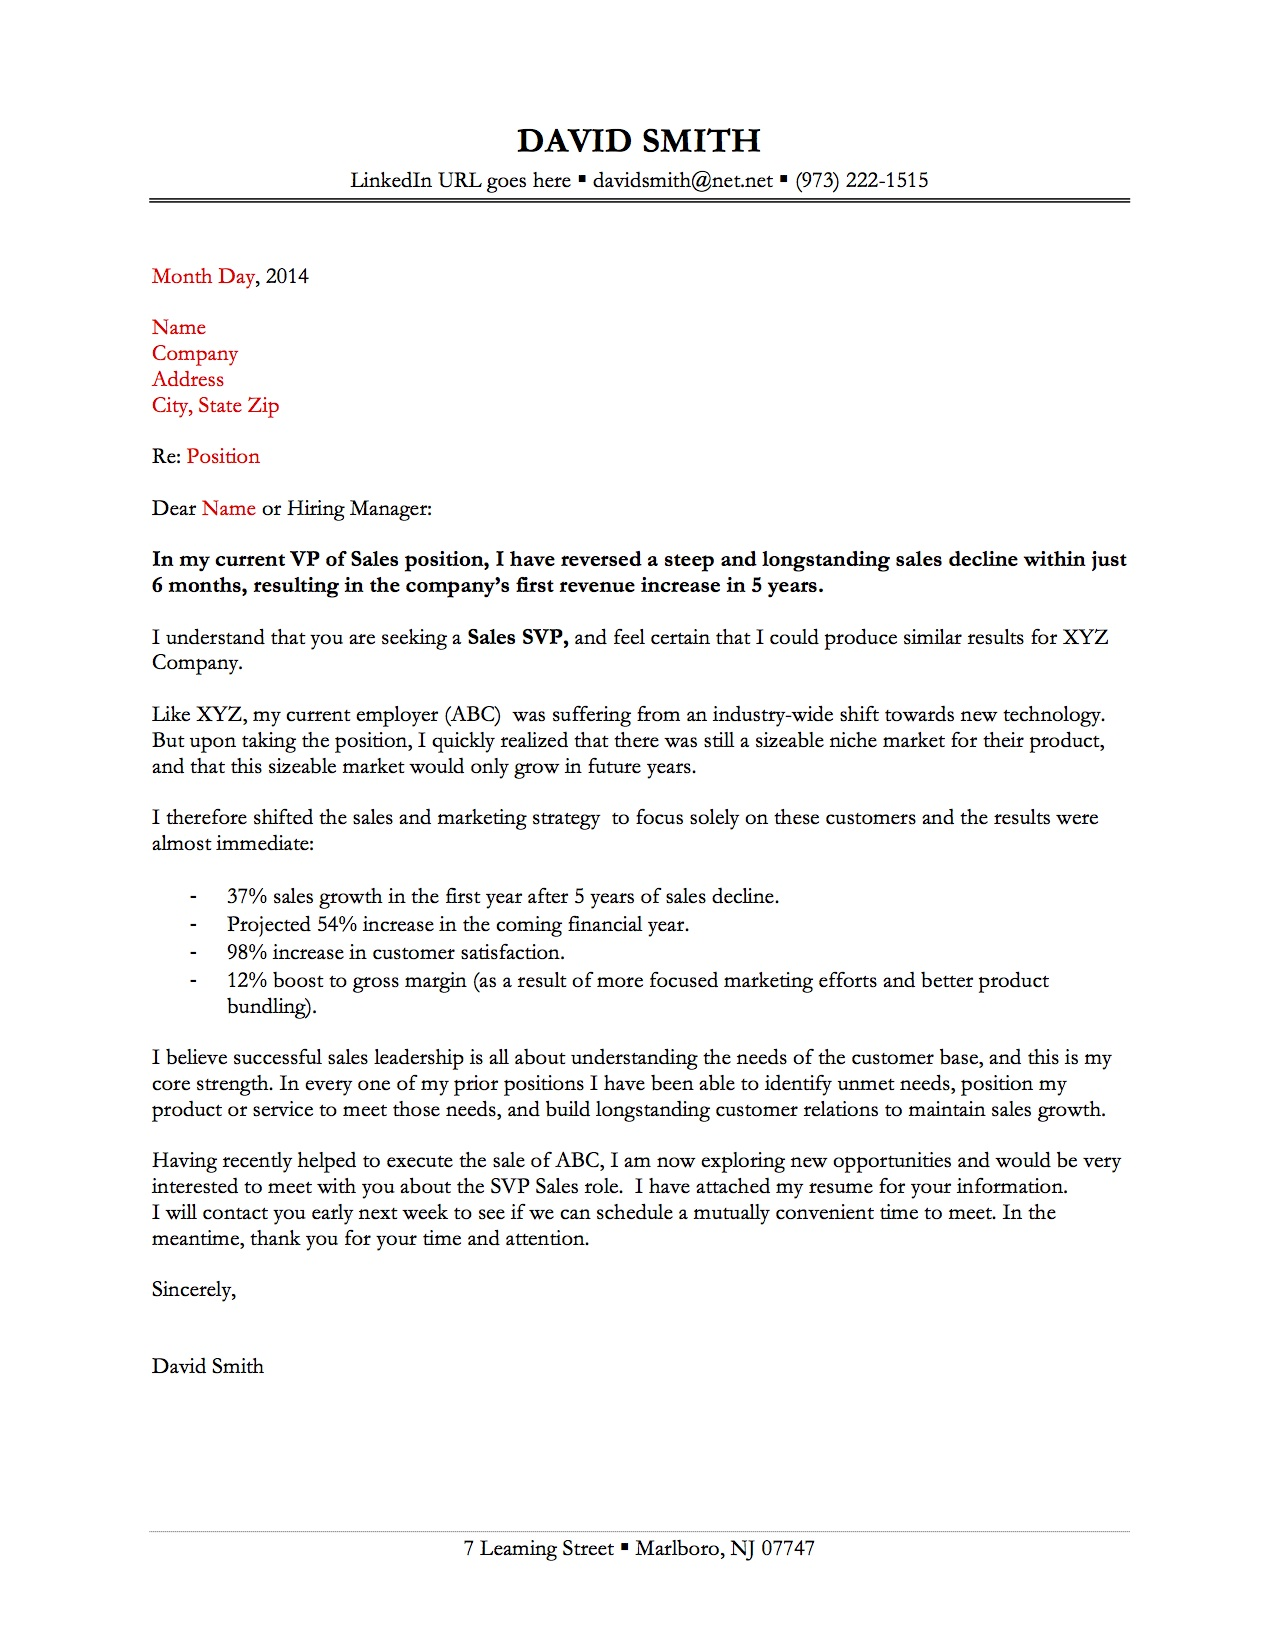 sample cover letter 2. Resume Example. Resume CV Cover Letter